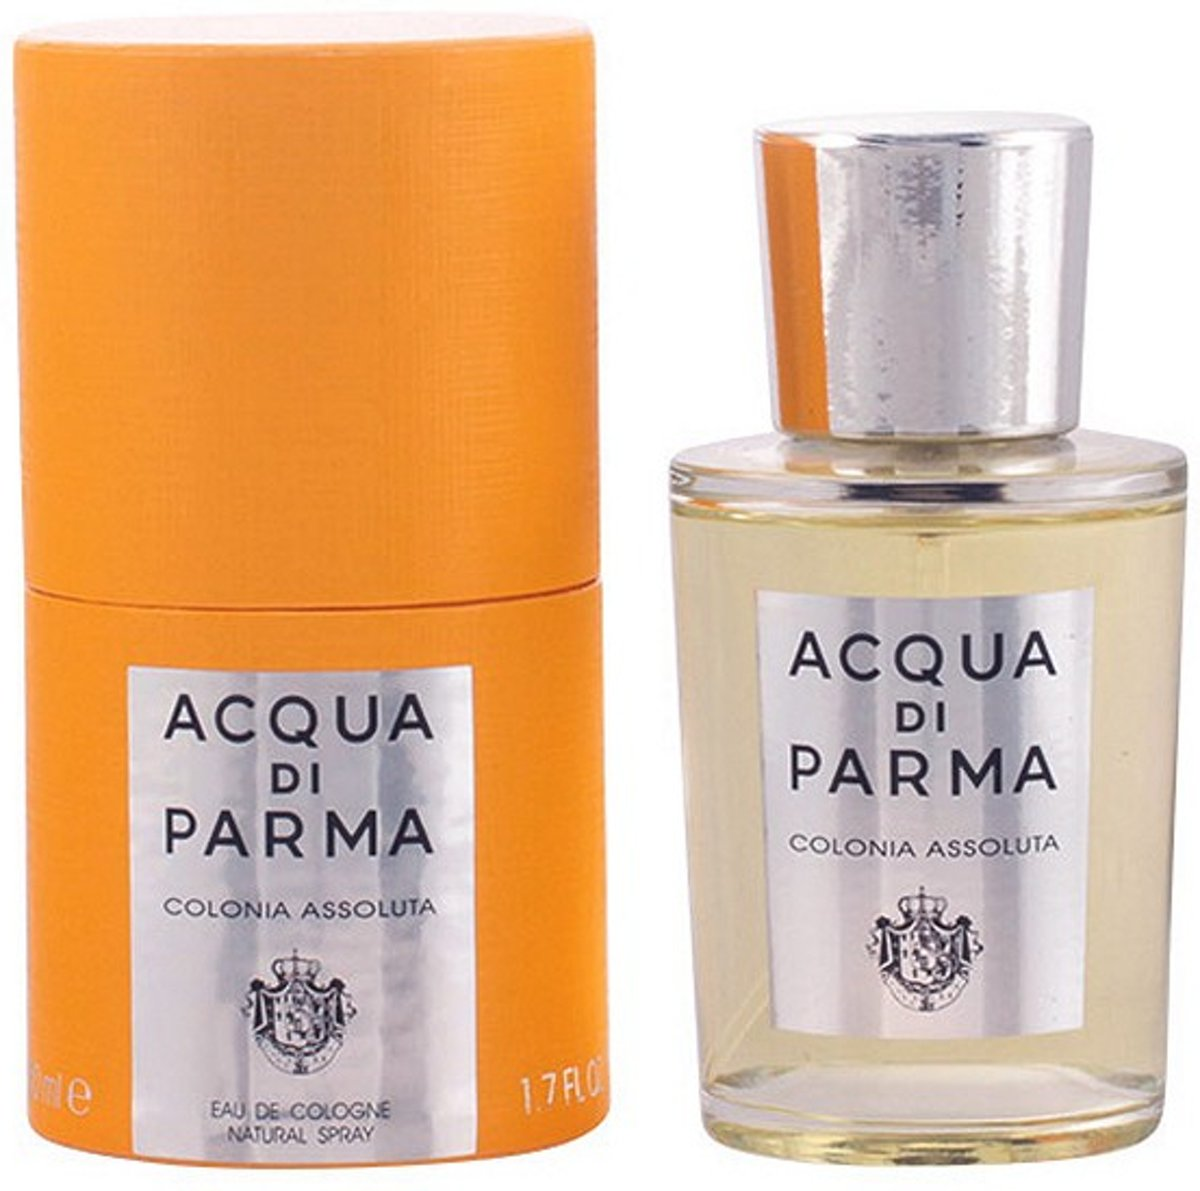 Acqua Di Parma - ASSOLUTA - eau de cologne - spray 500 ml